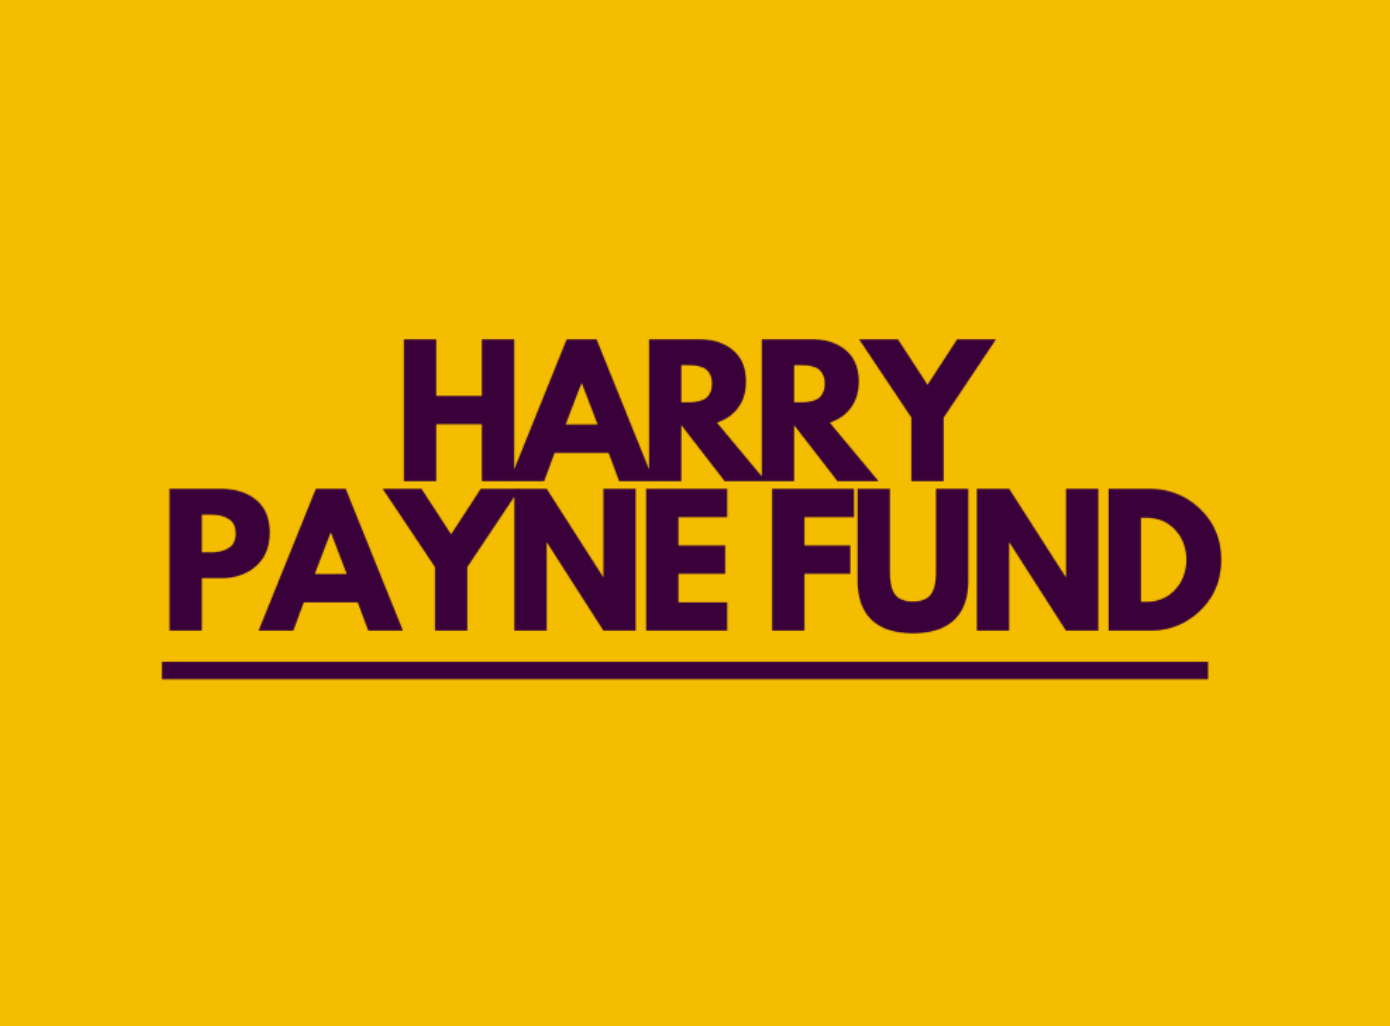 Harry Payne Fund.png